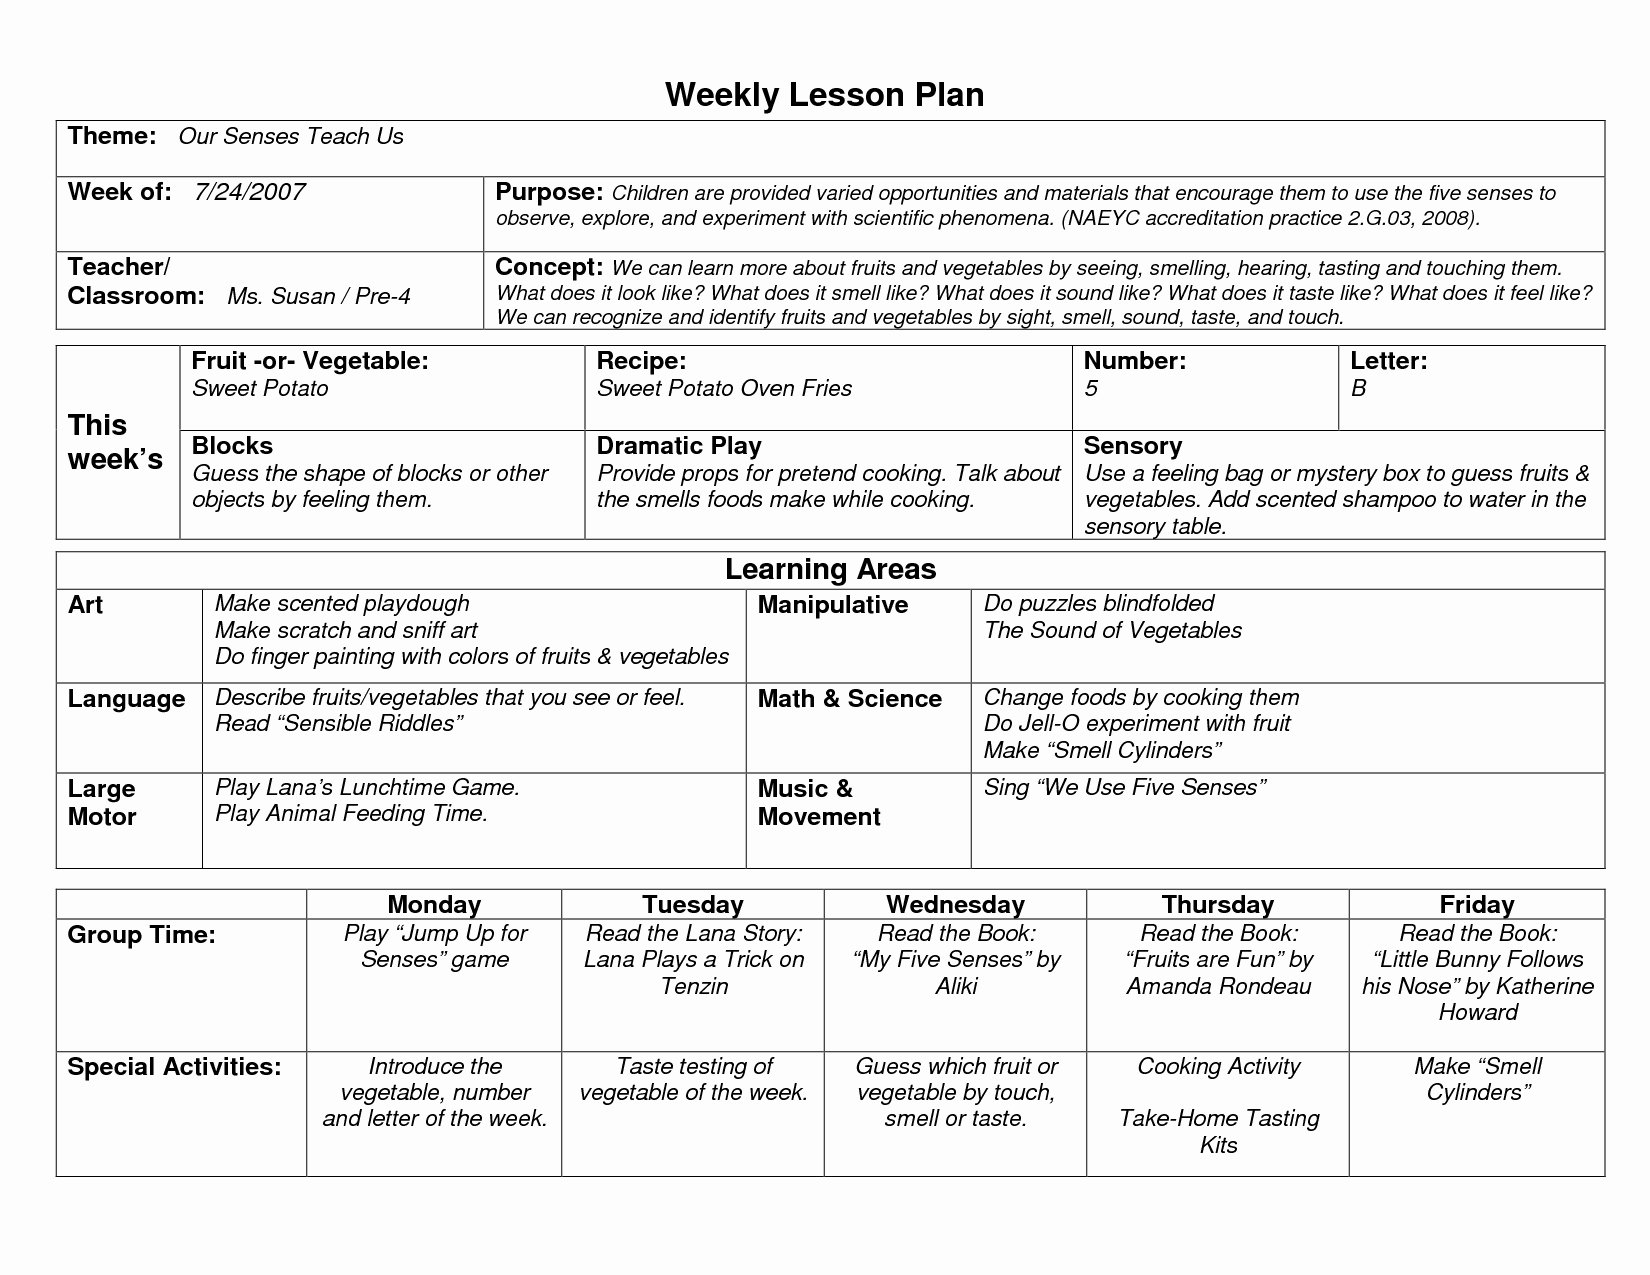 Lesson Plan Template for toddlers Beautiful Naeyc Lesson Plan Template for Preschool